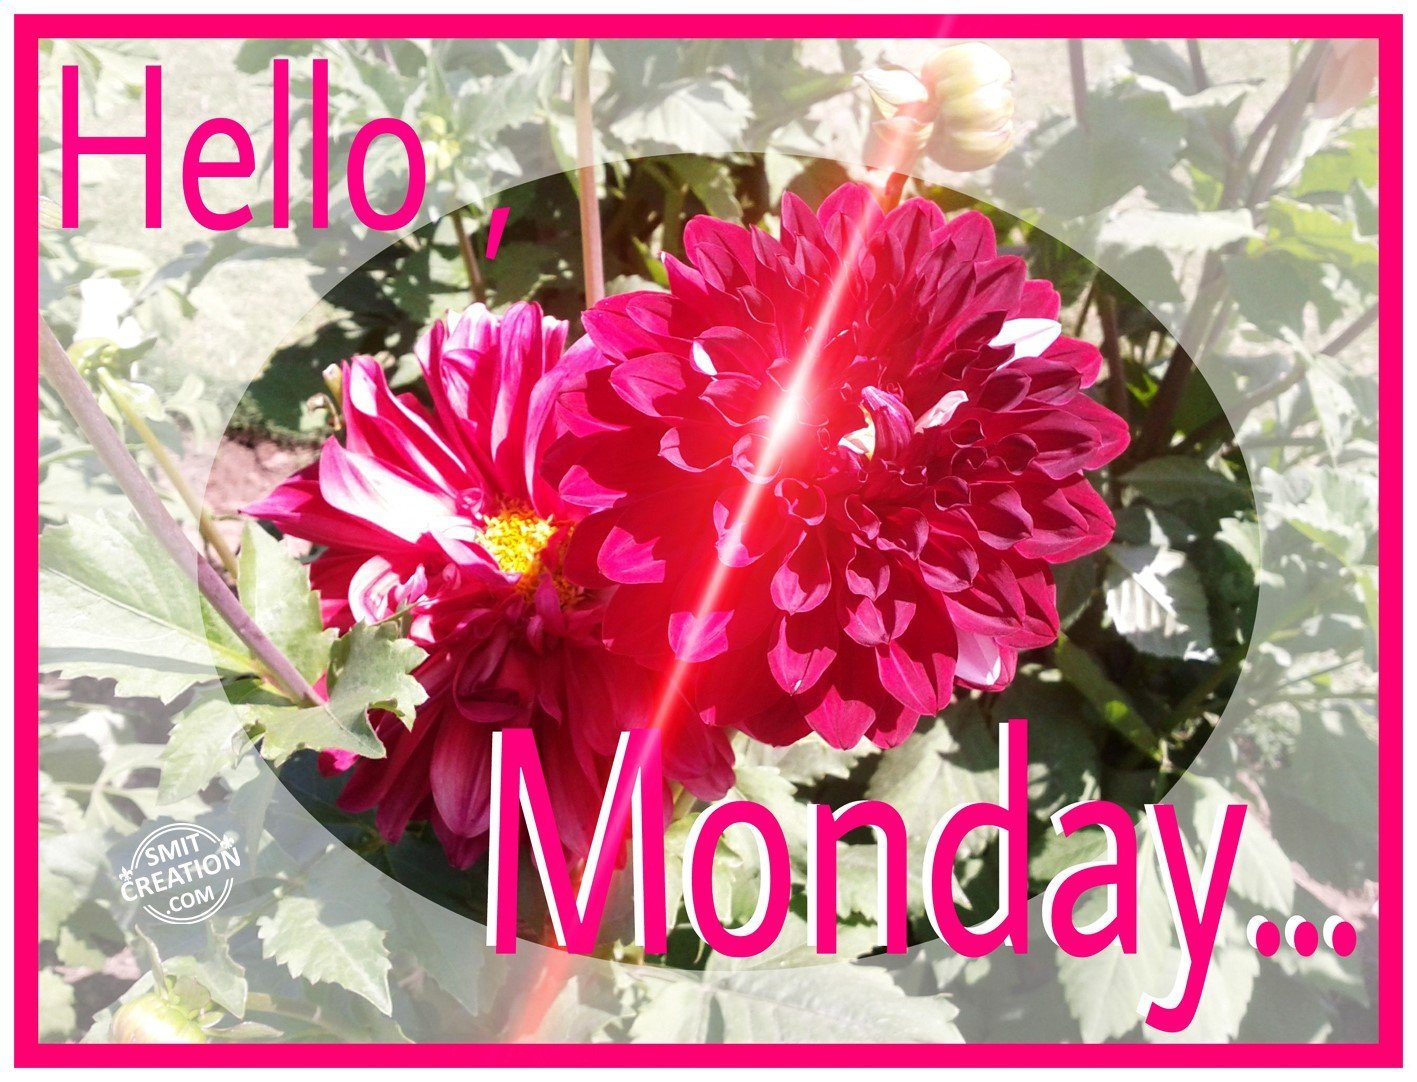 Hello MONDAY SmitCreation Com